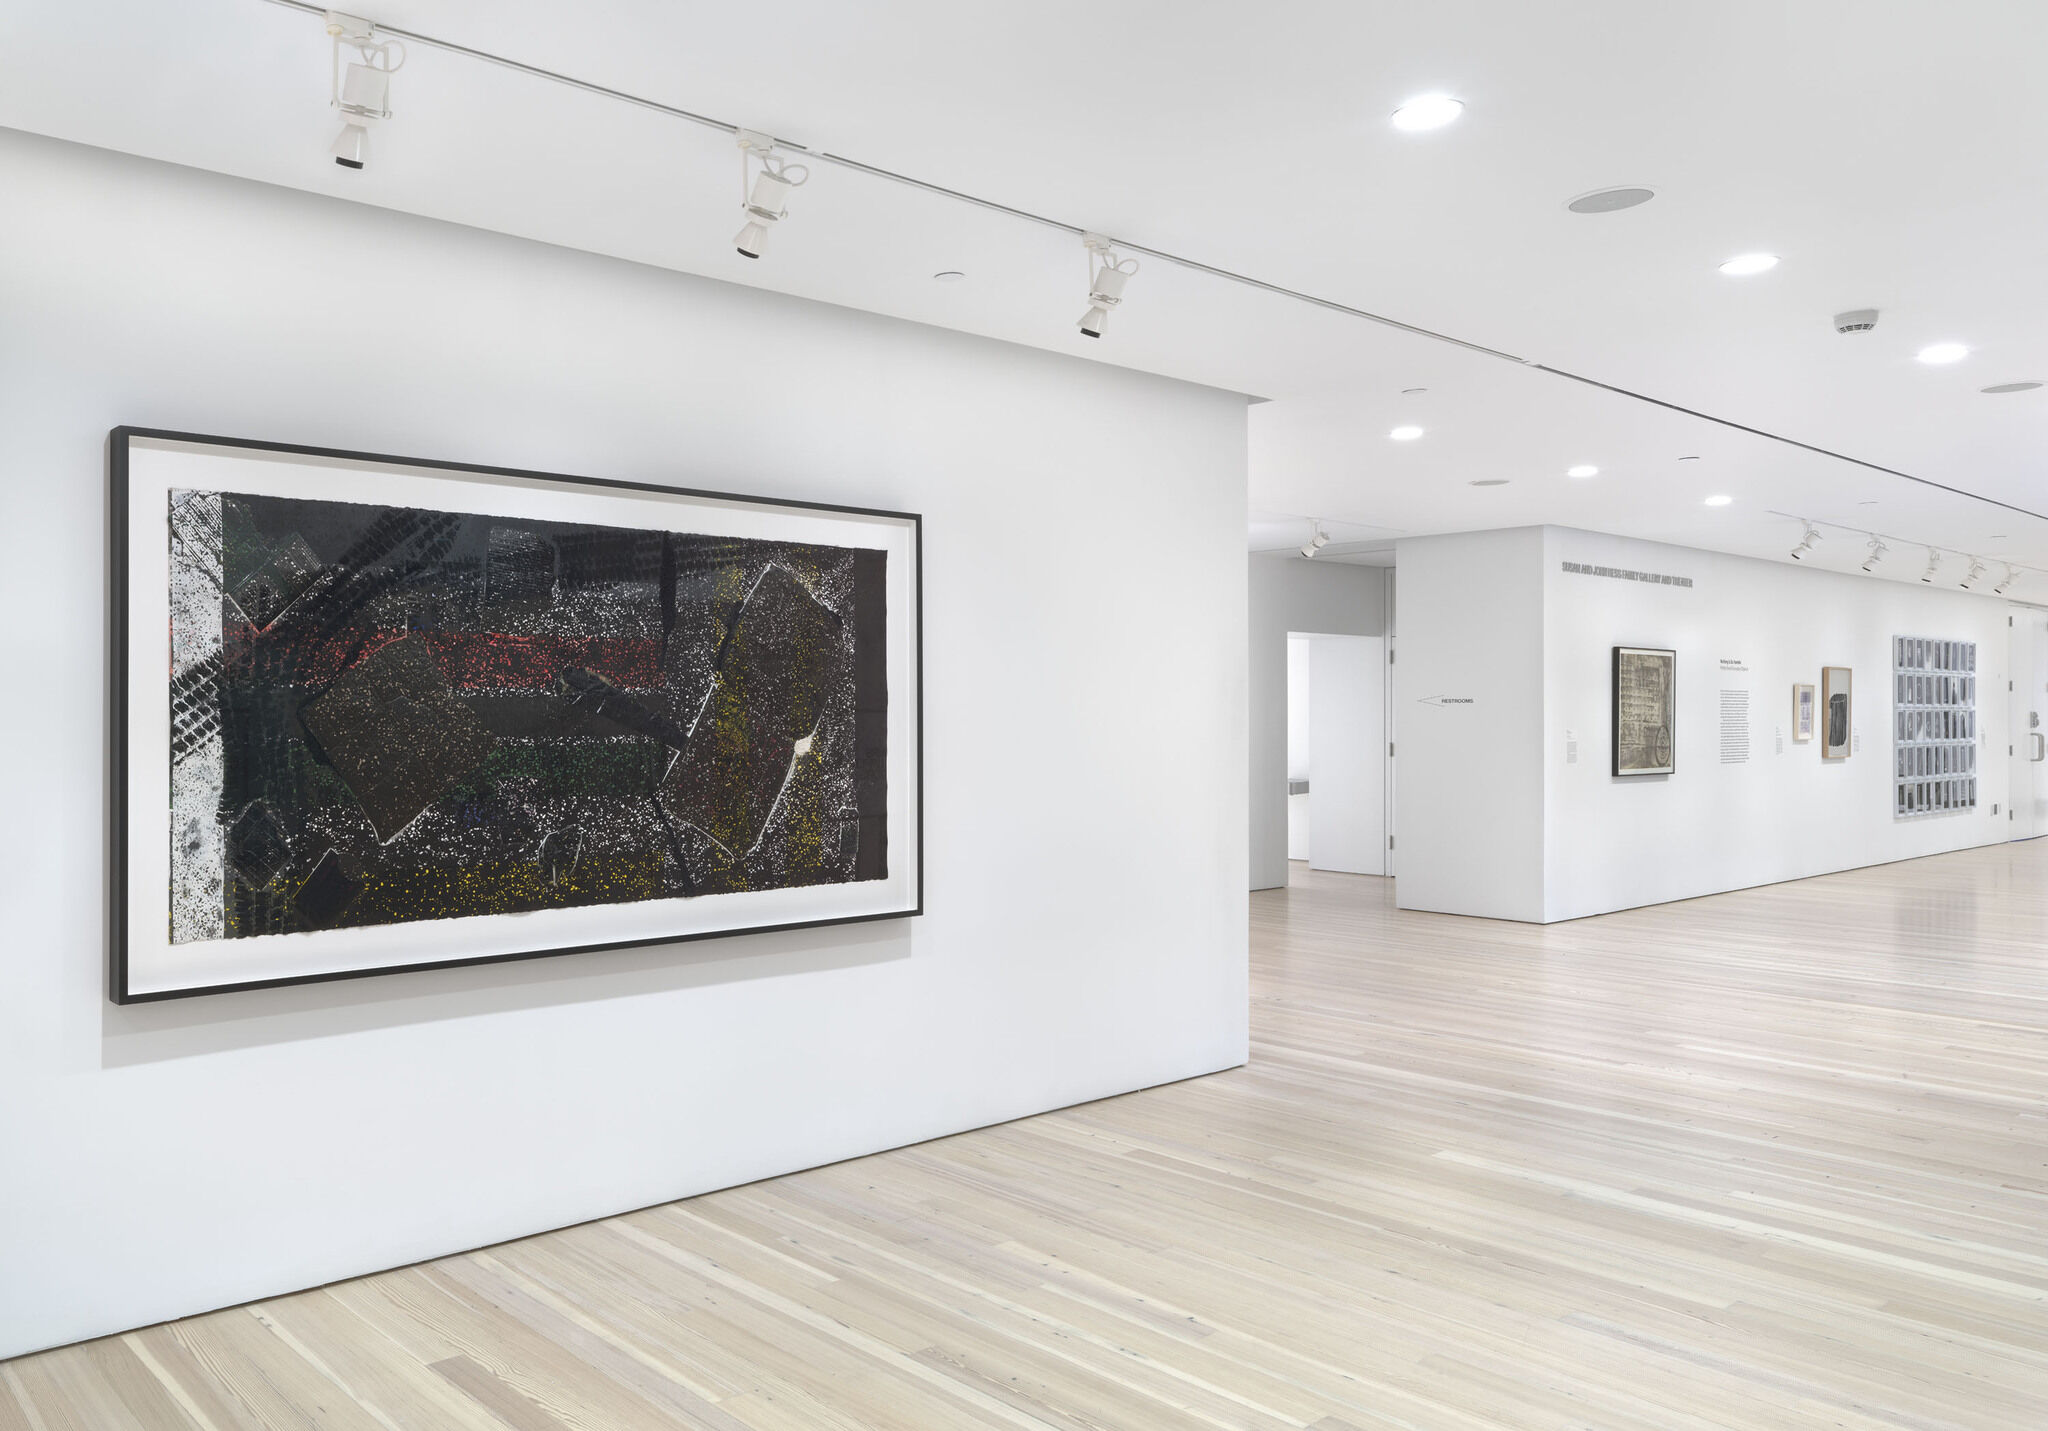 Works of art displayed on white walls in a gallery.